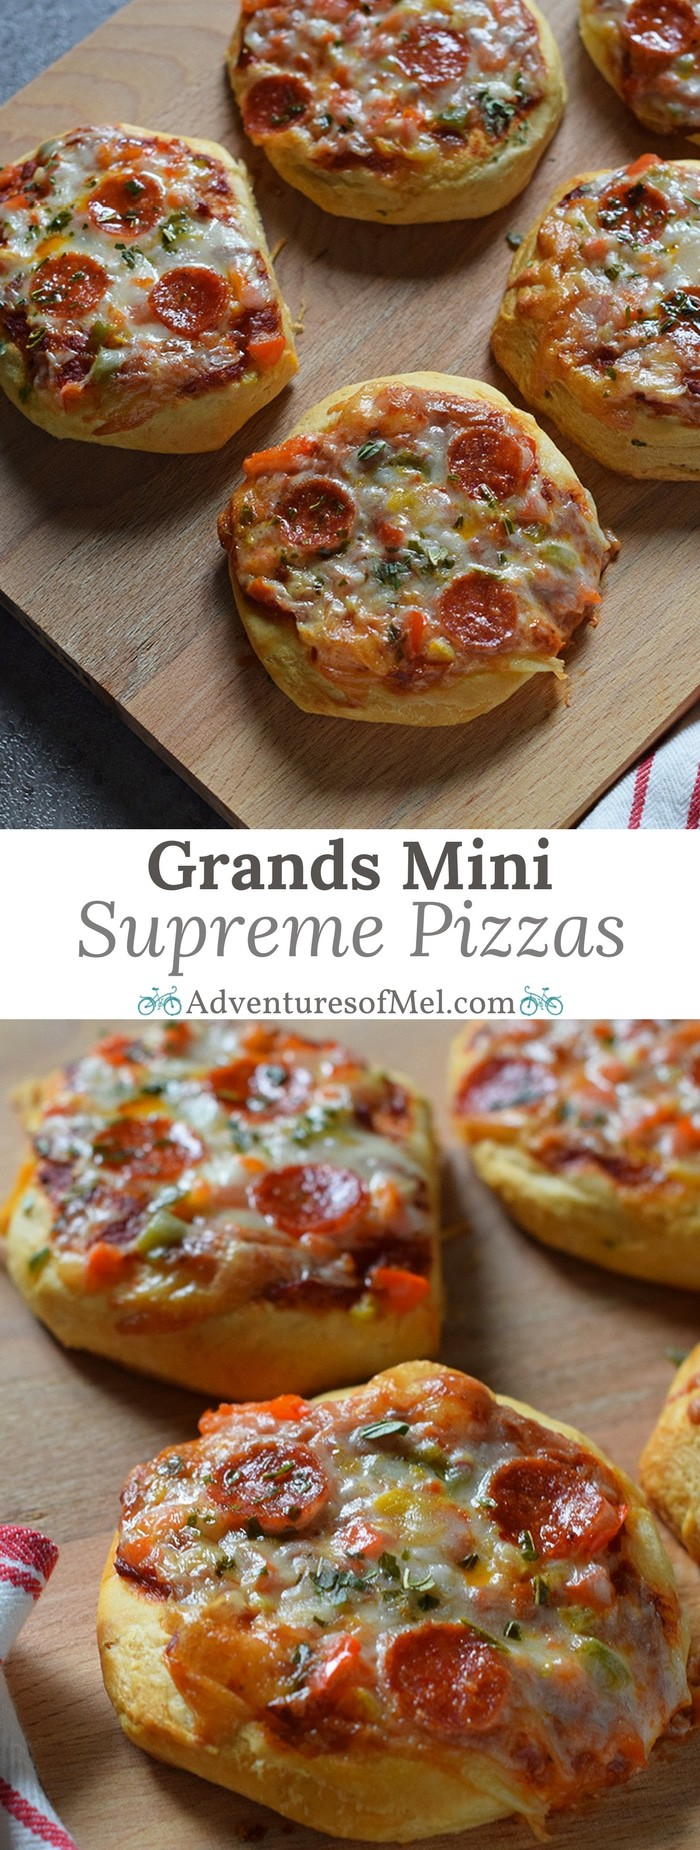 Grands Mini Supreme Pizzas are a quick and easy dinner recipe with Grands Biscuits, pizza sauce, veggies, cheese, pepperoni, and basil.